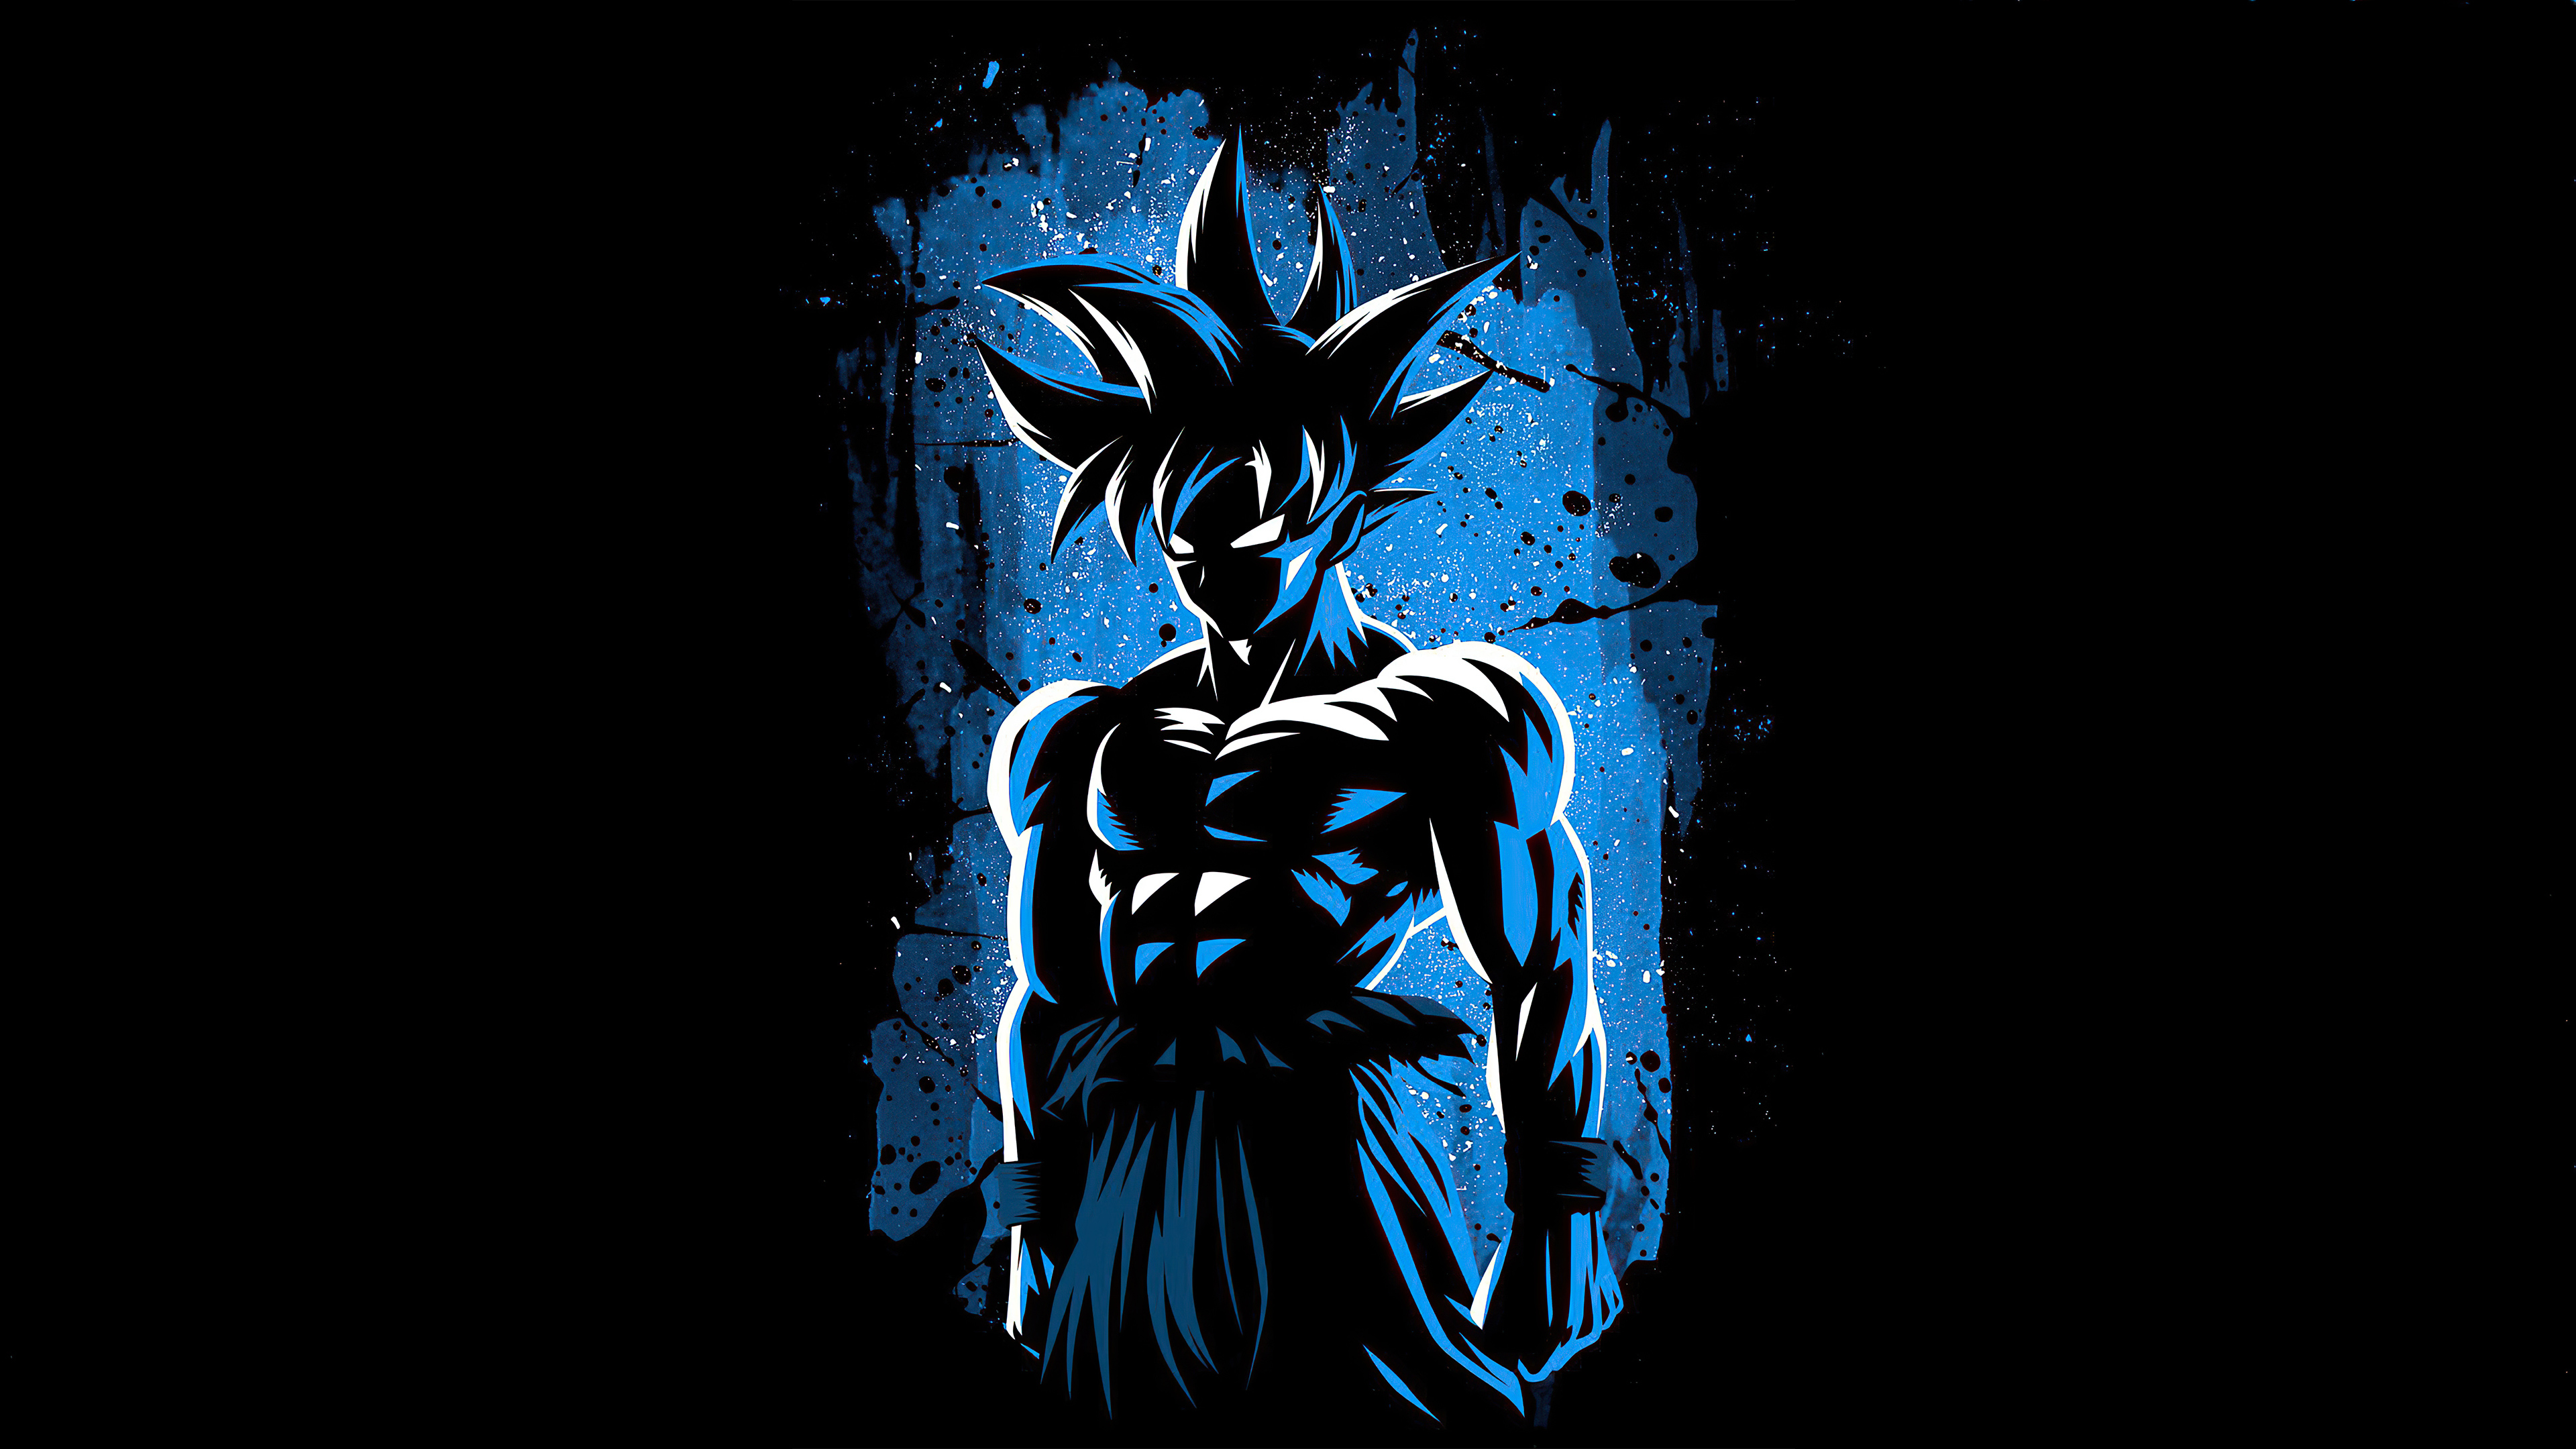 Goku 2020 New Amoled Wallpaper Hd Anime 4k Wallpapers Images Photos And Background